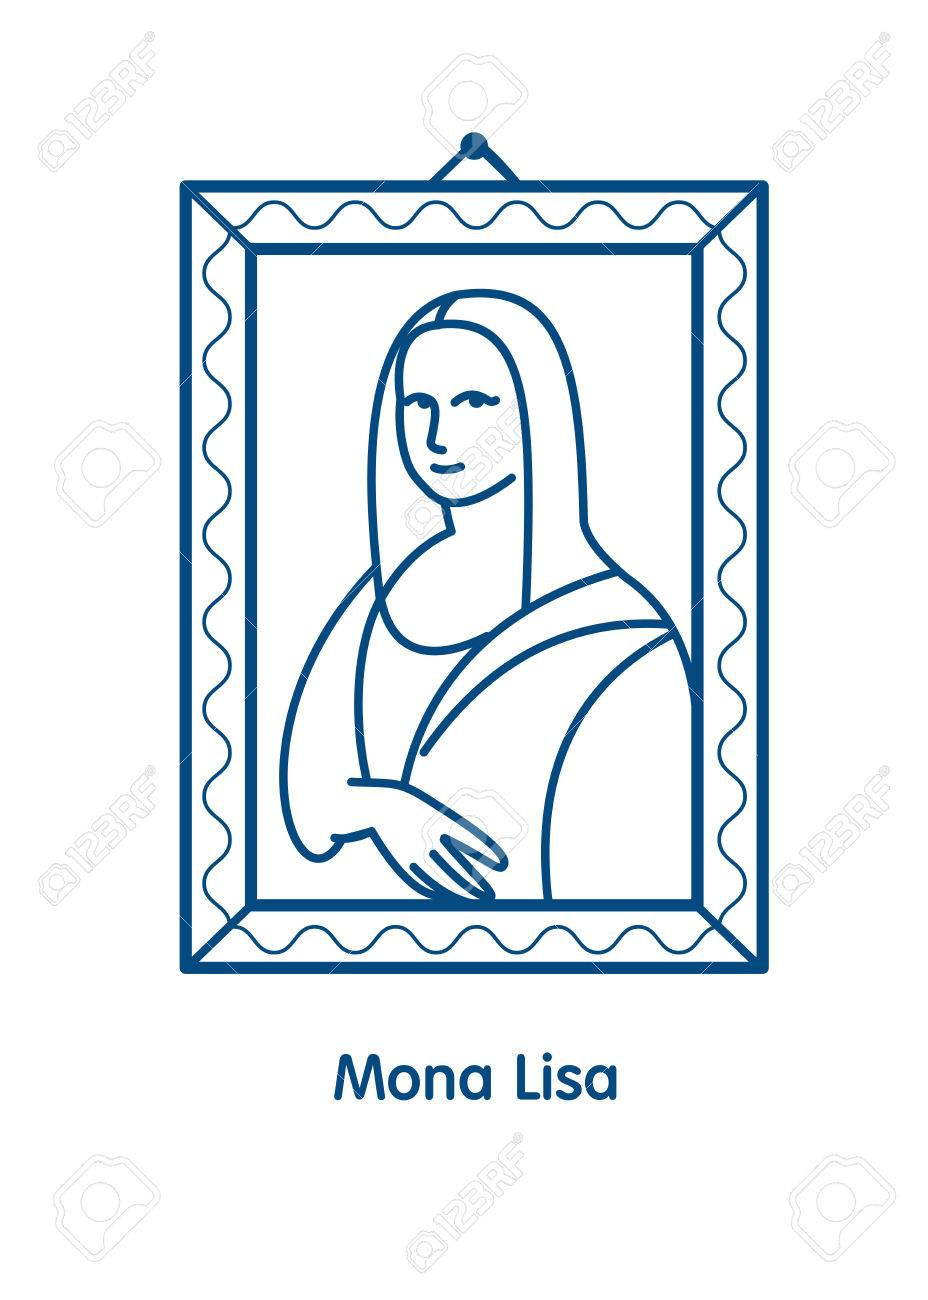 Painting The Mona Lisa.The linear vector emblem icon. The famous...